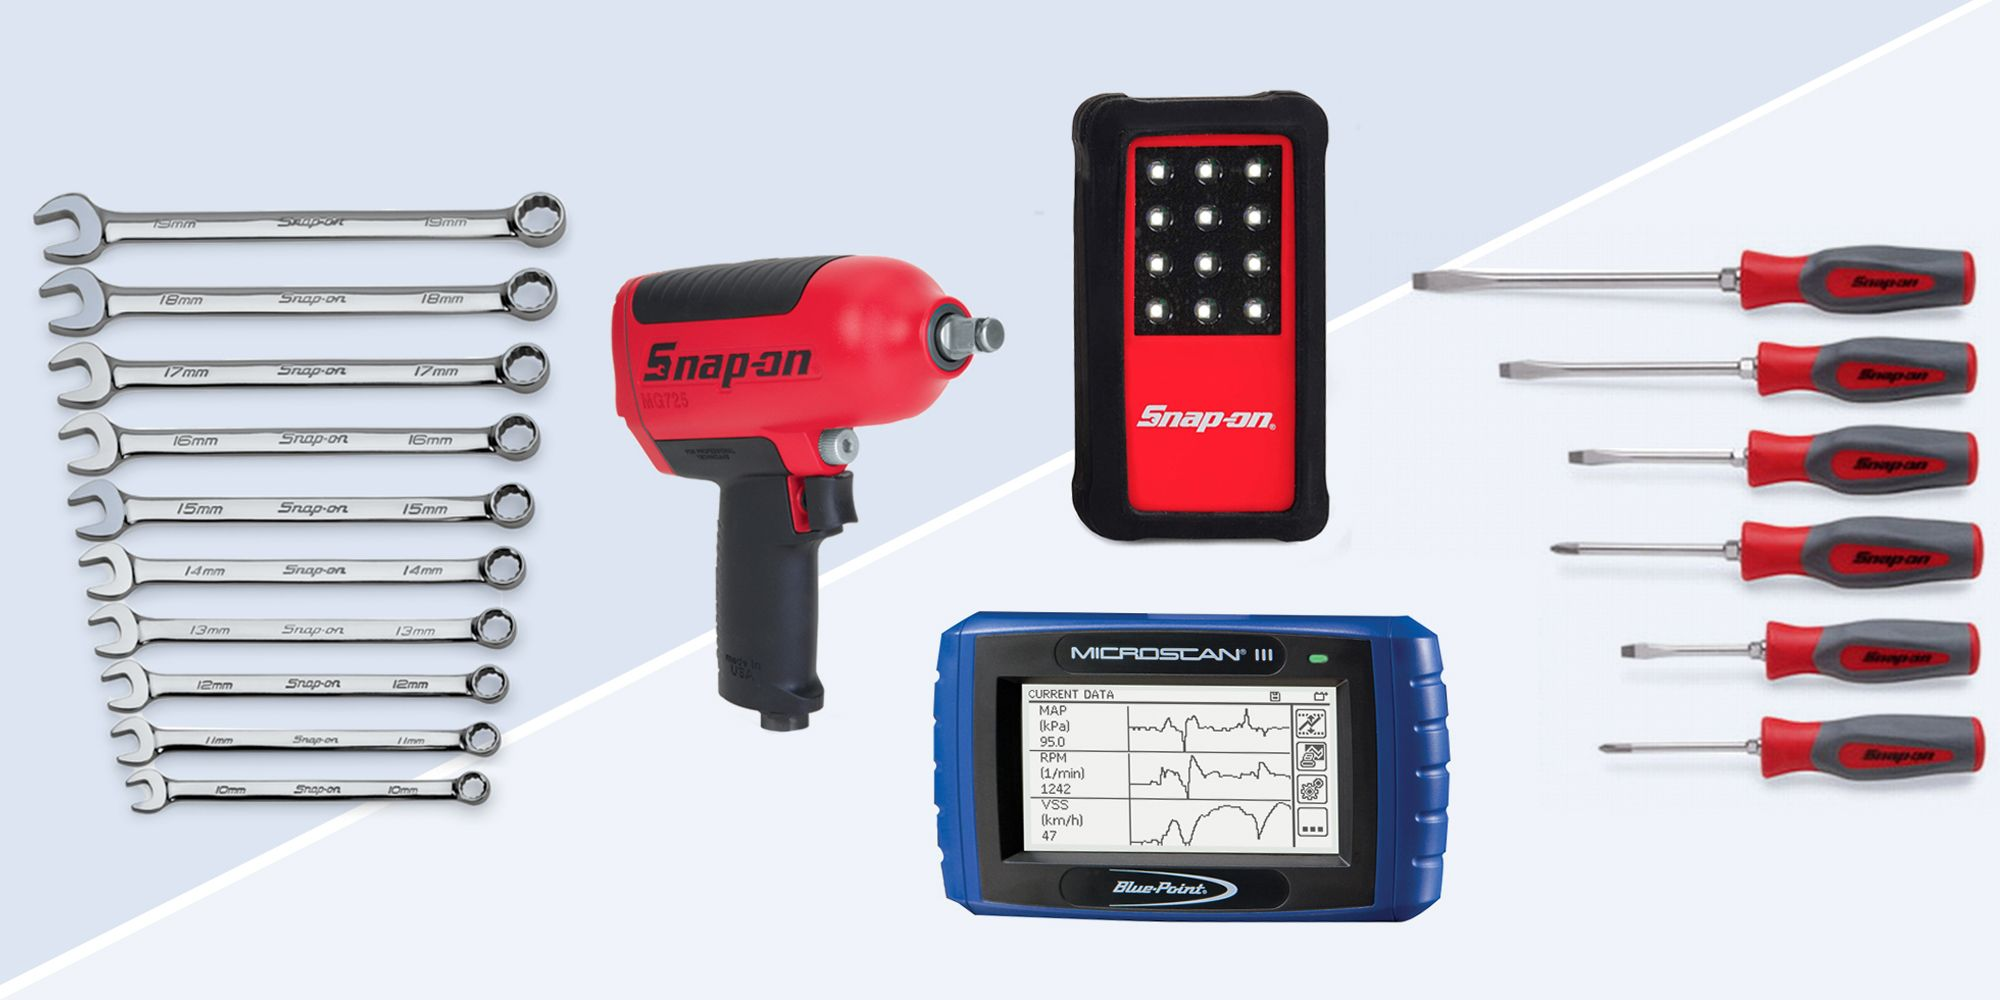 10 Best Snap On Tools Of 2018 Tool Sets And Kits These Replacement Parts Are For Kit Too